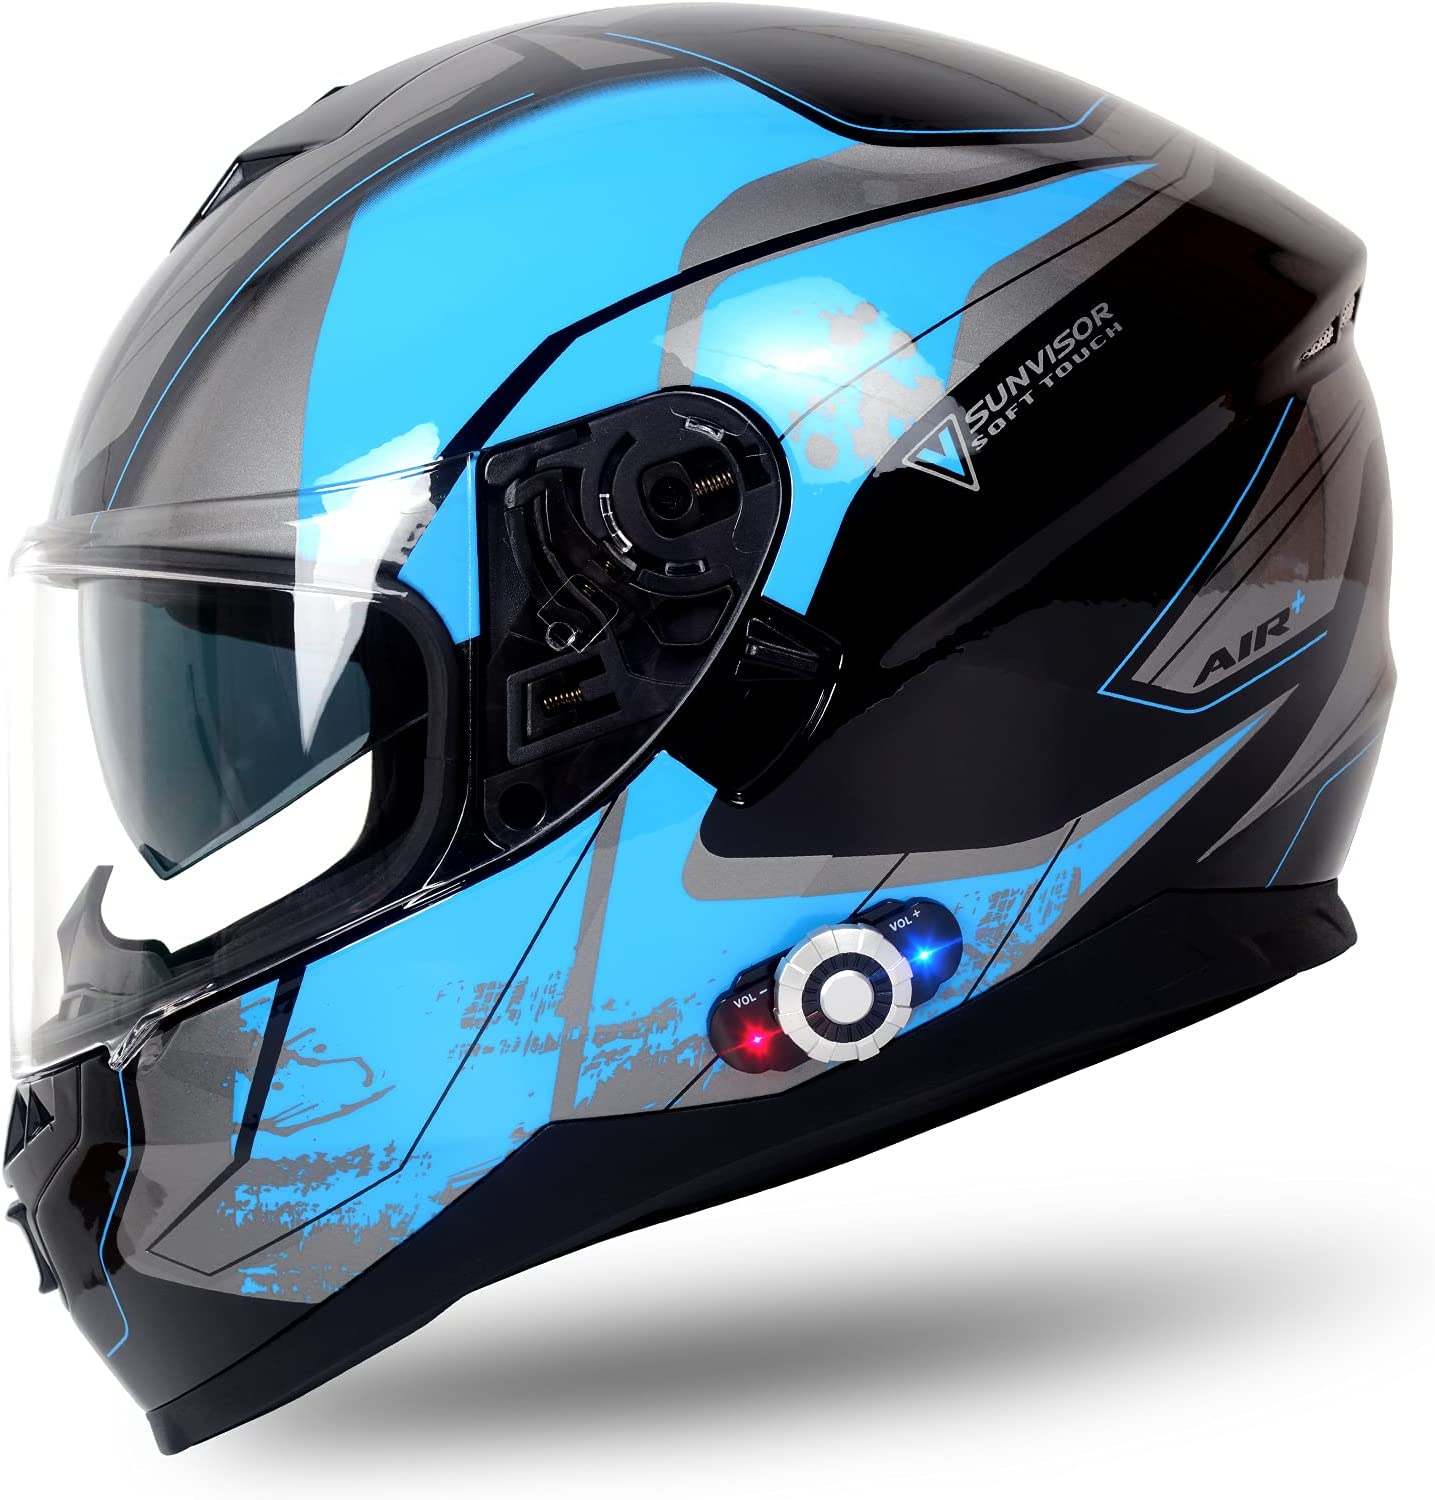 FreedConn Bluetooth Motorcycle Helmets Max 86% OFF 6 Riders F Group Direct store Intercom